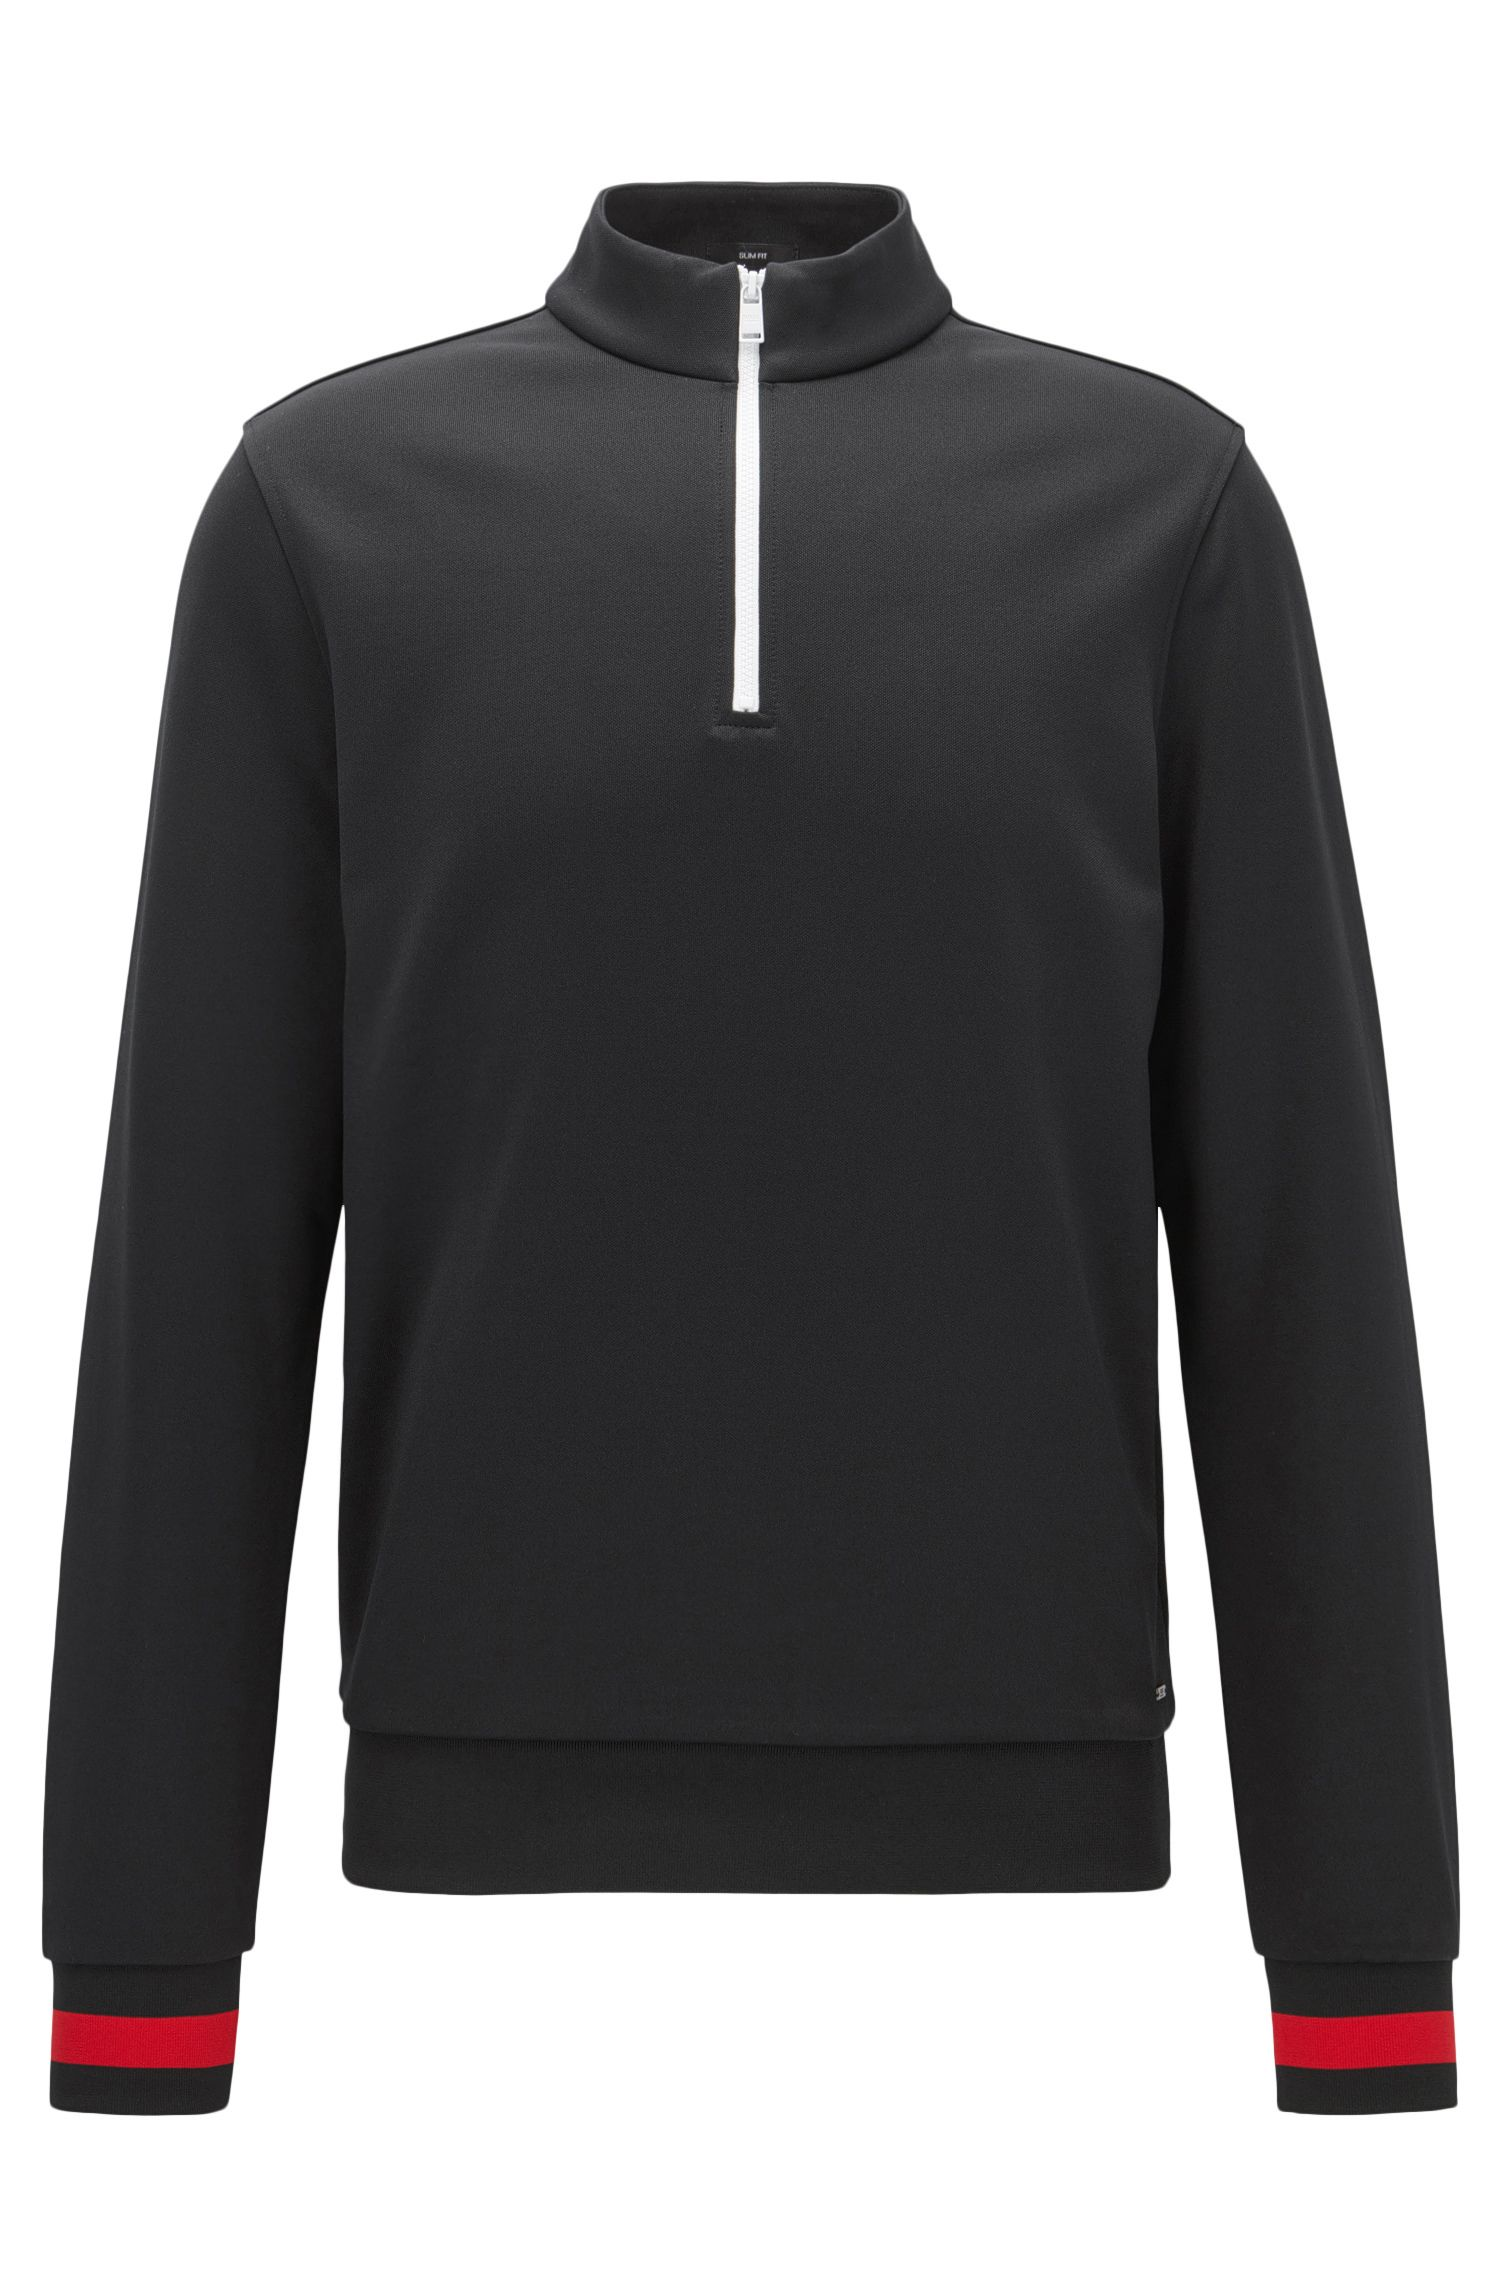 Zip-neck sweatshirt in a technical fabric with contrast details